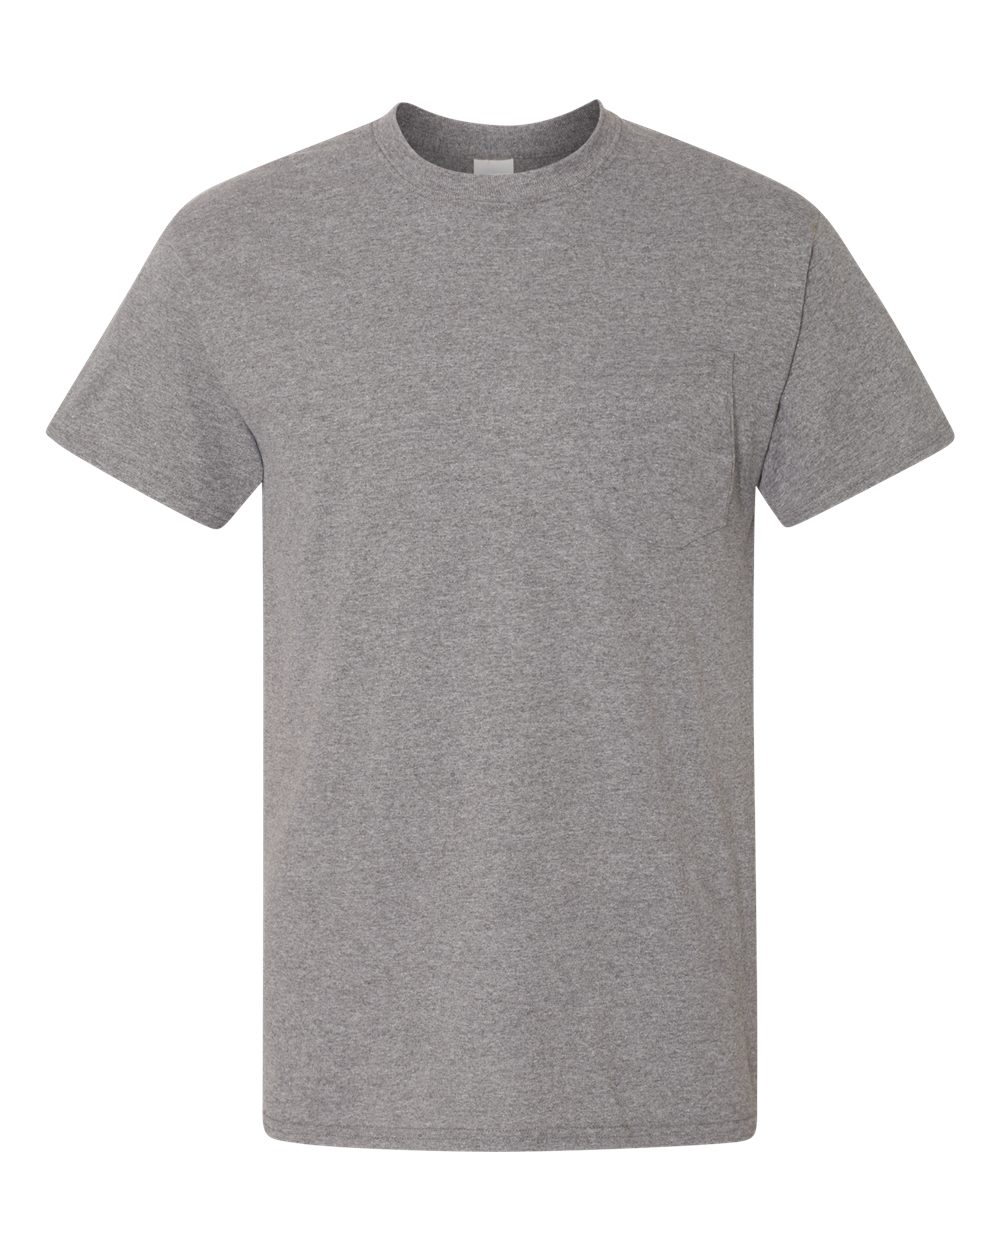 click to view Graphite Heather